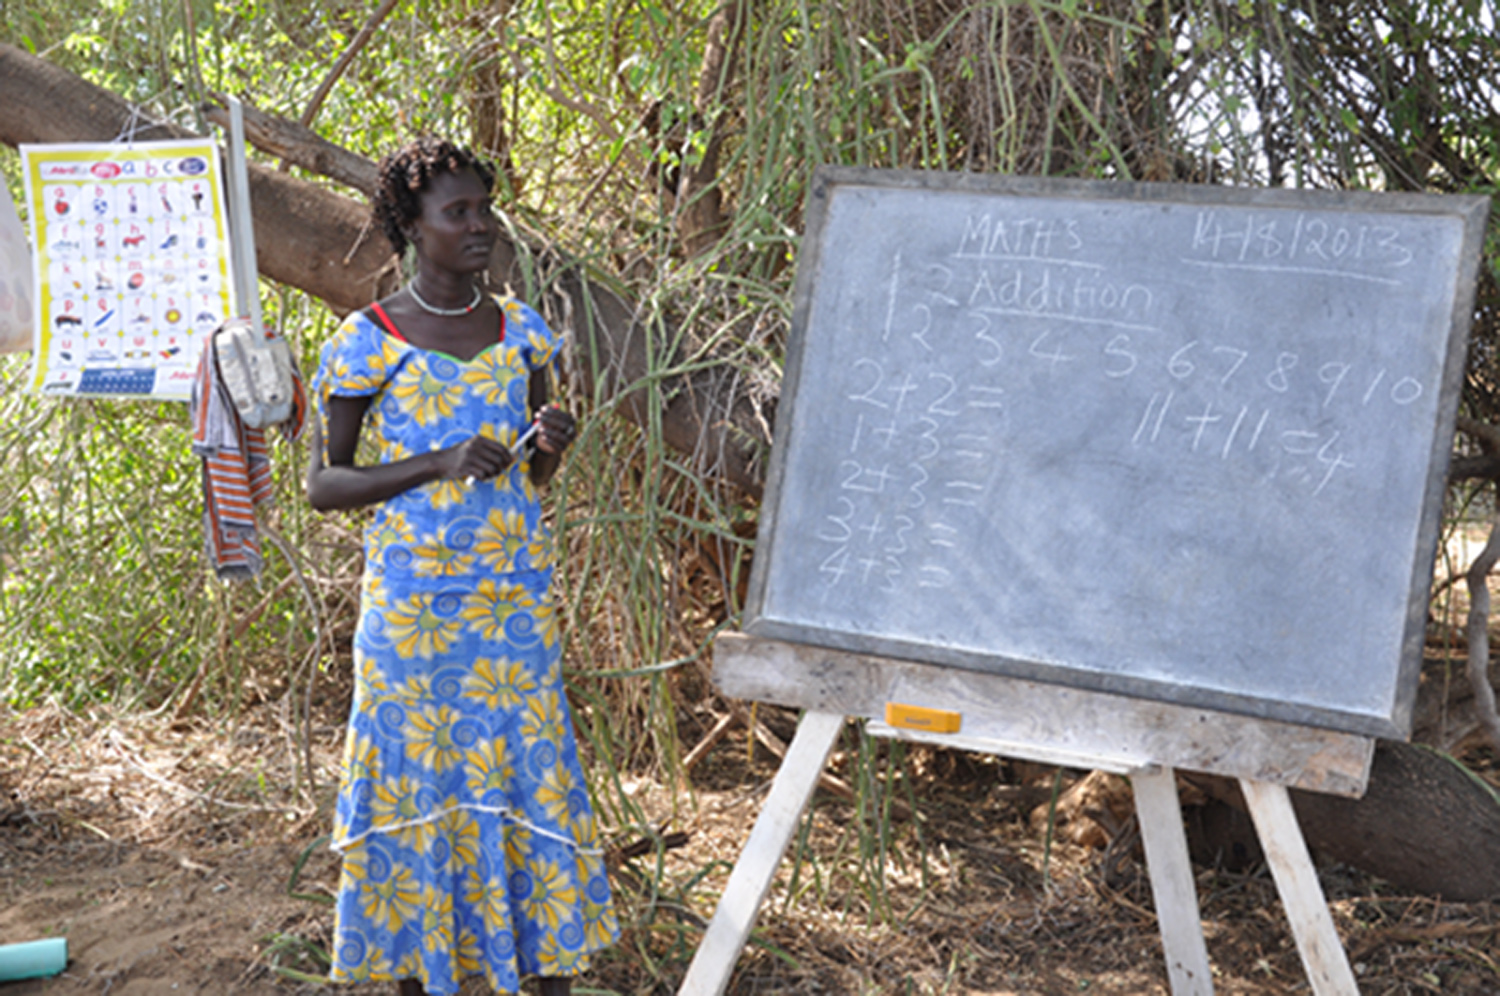 A woman is standing next to a blackboard, on which math problems have been written. A colorful poster with the alphabet is hanging behind her.